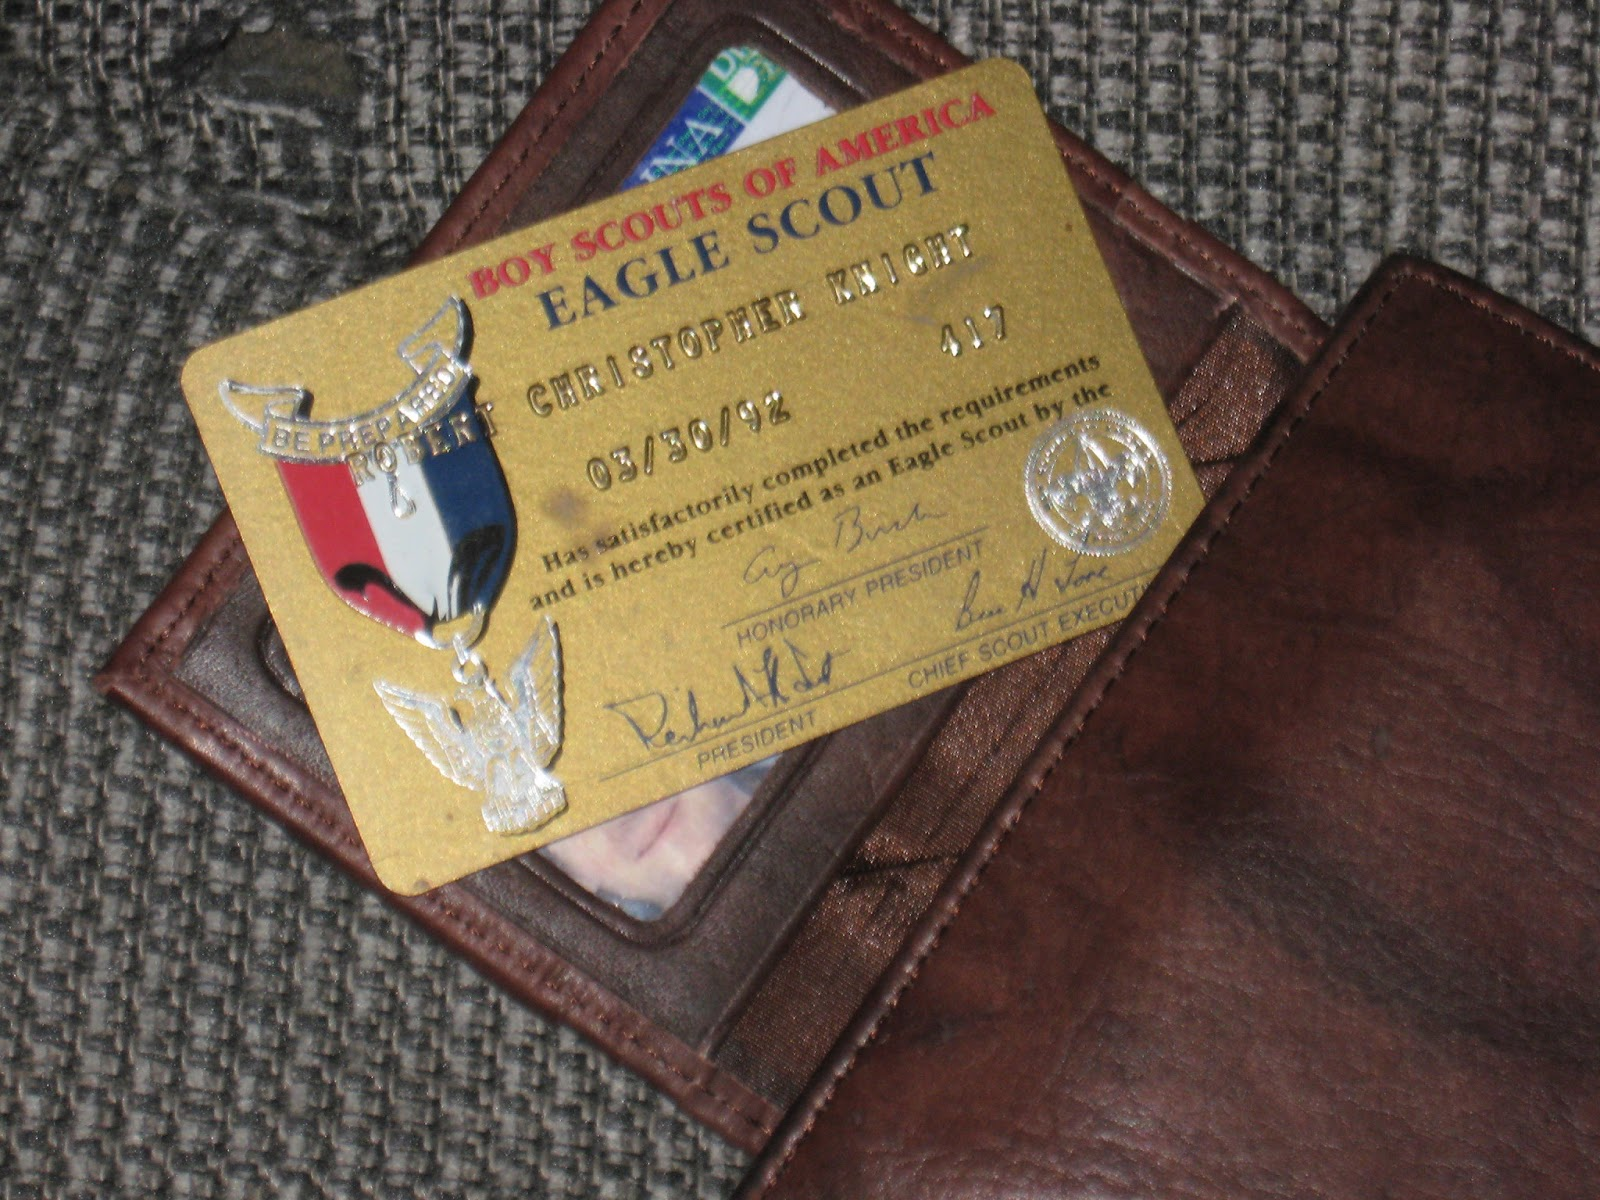 The Knight Shift: This is my Eagle Scout card